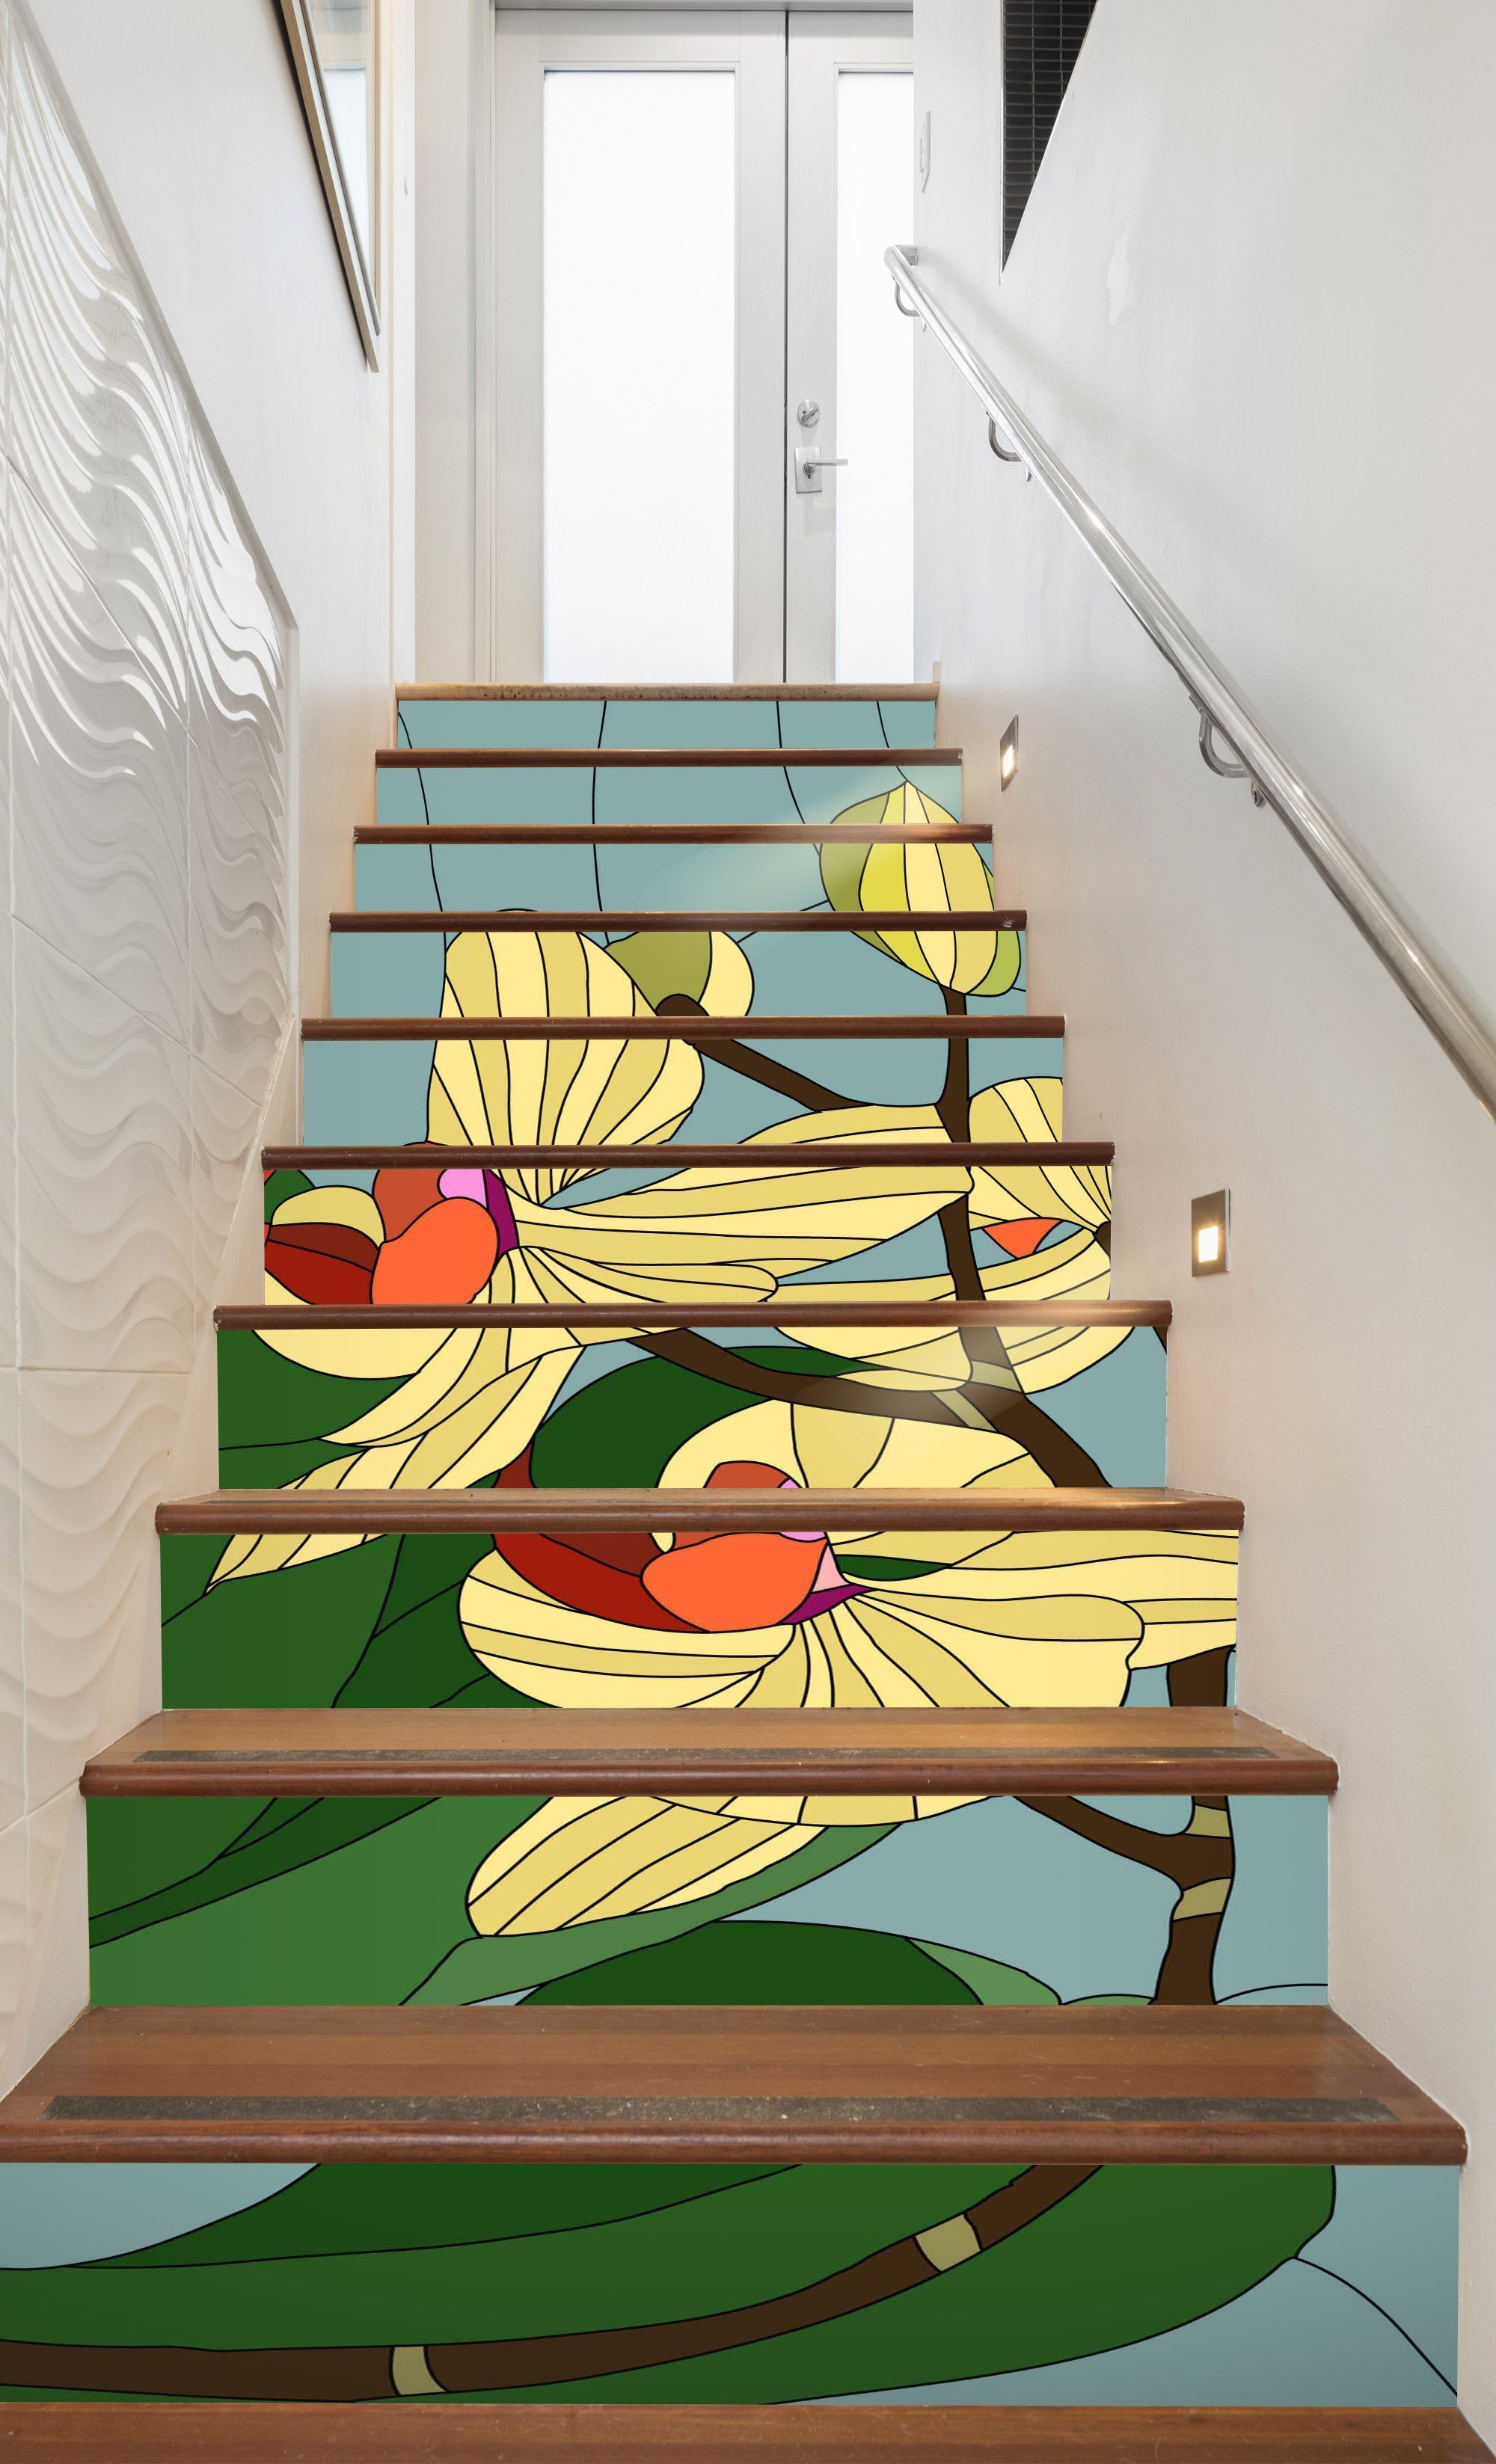 3D Flowers 642 Stair Risers Wallpaper AJ Wallpaper